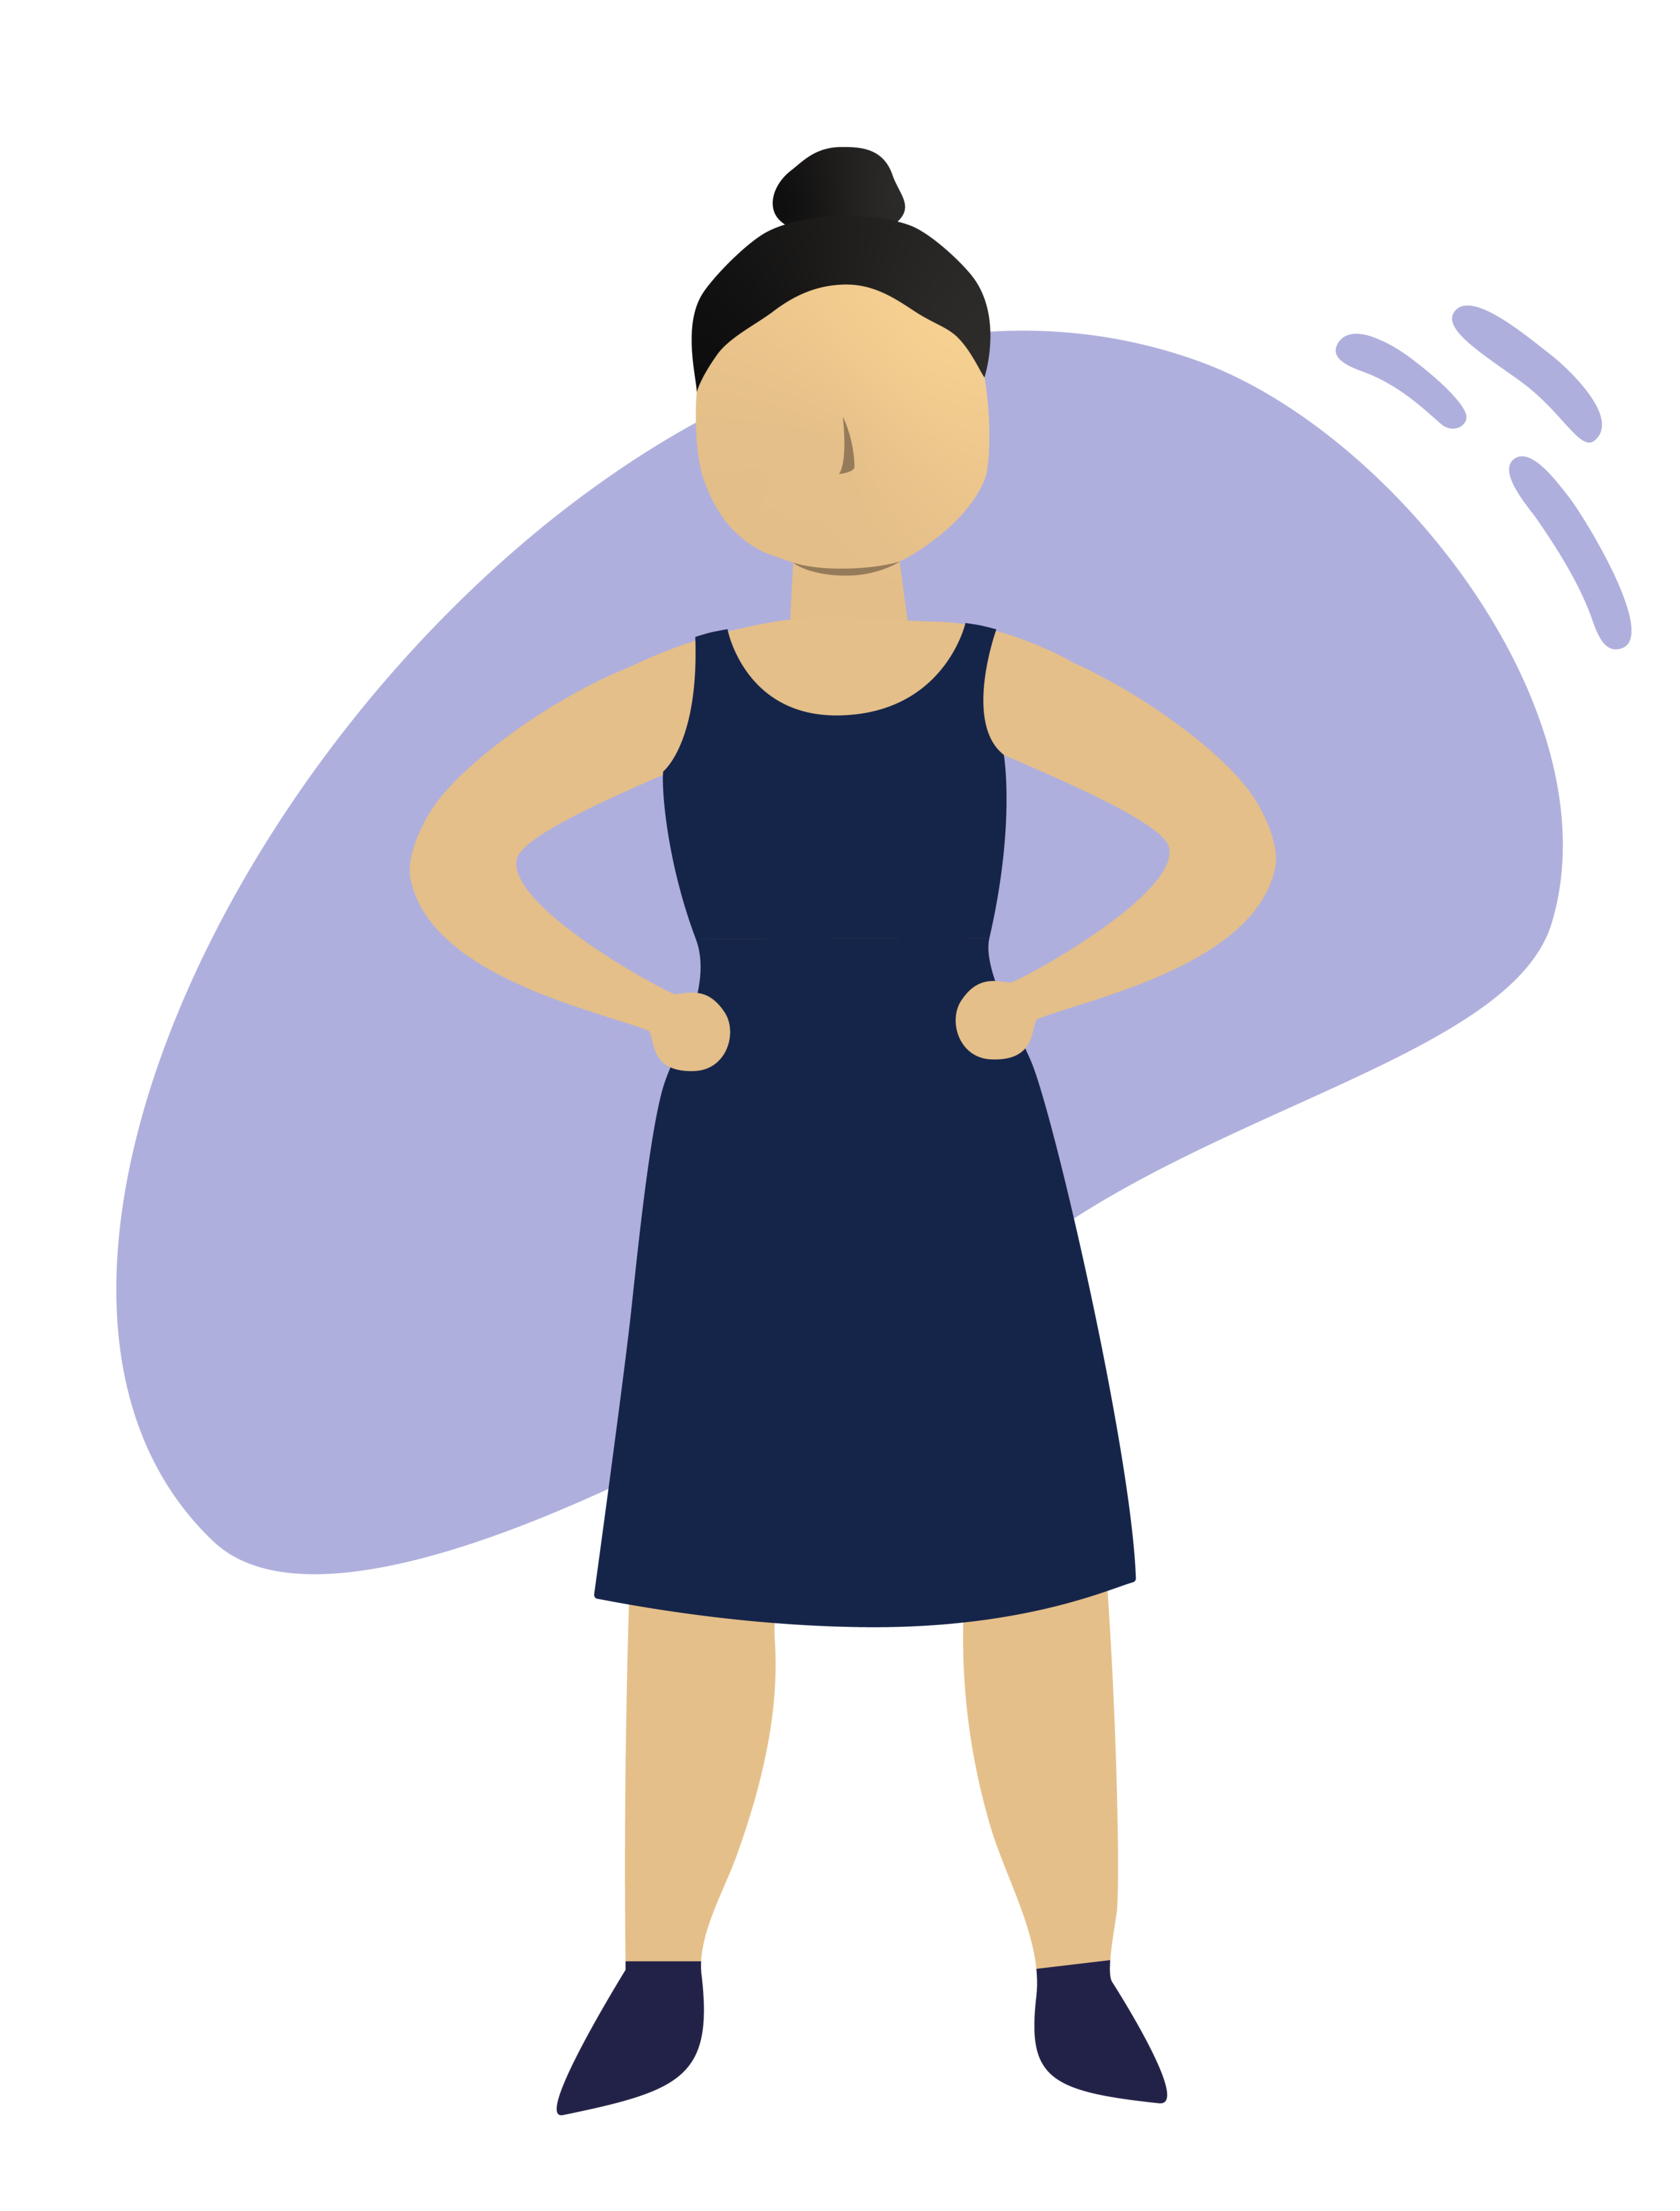 Menopause Research Illustrations-04.png